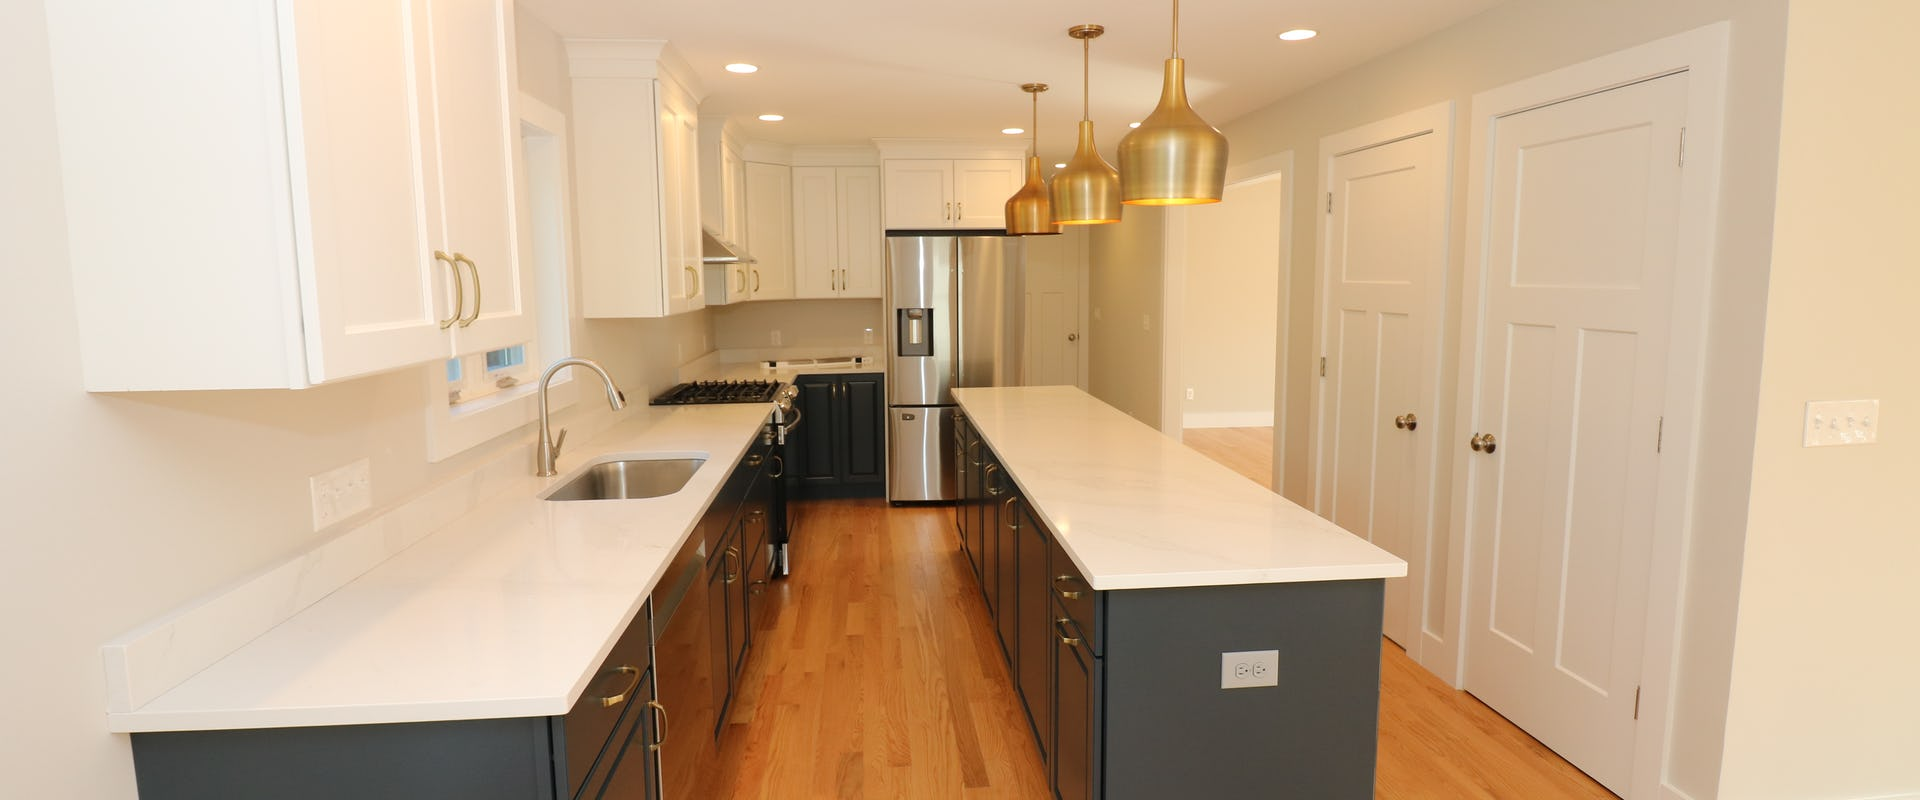 kitchen in new home